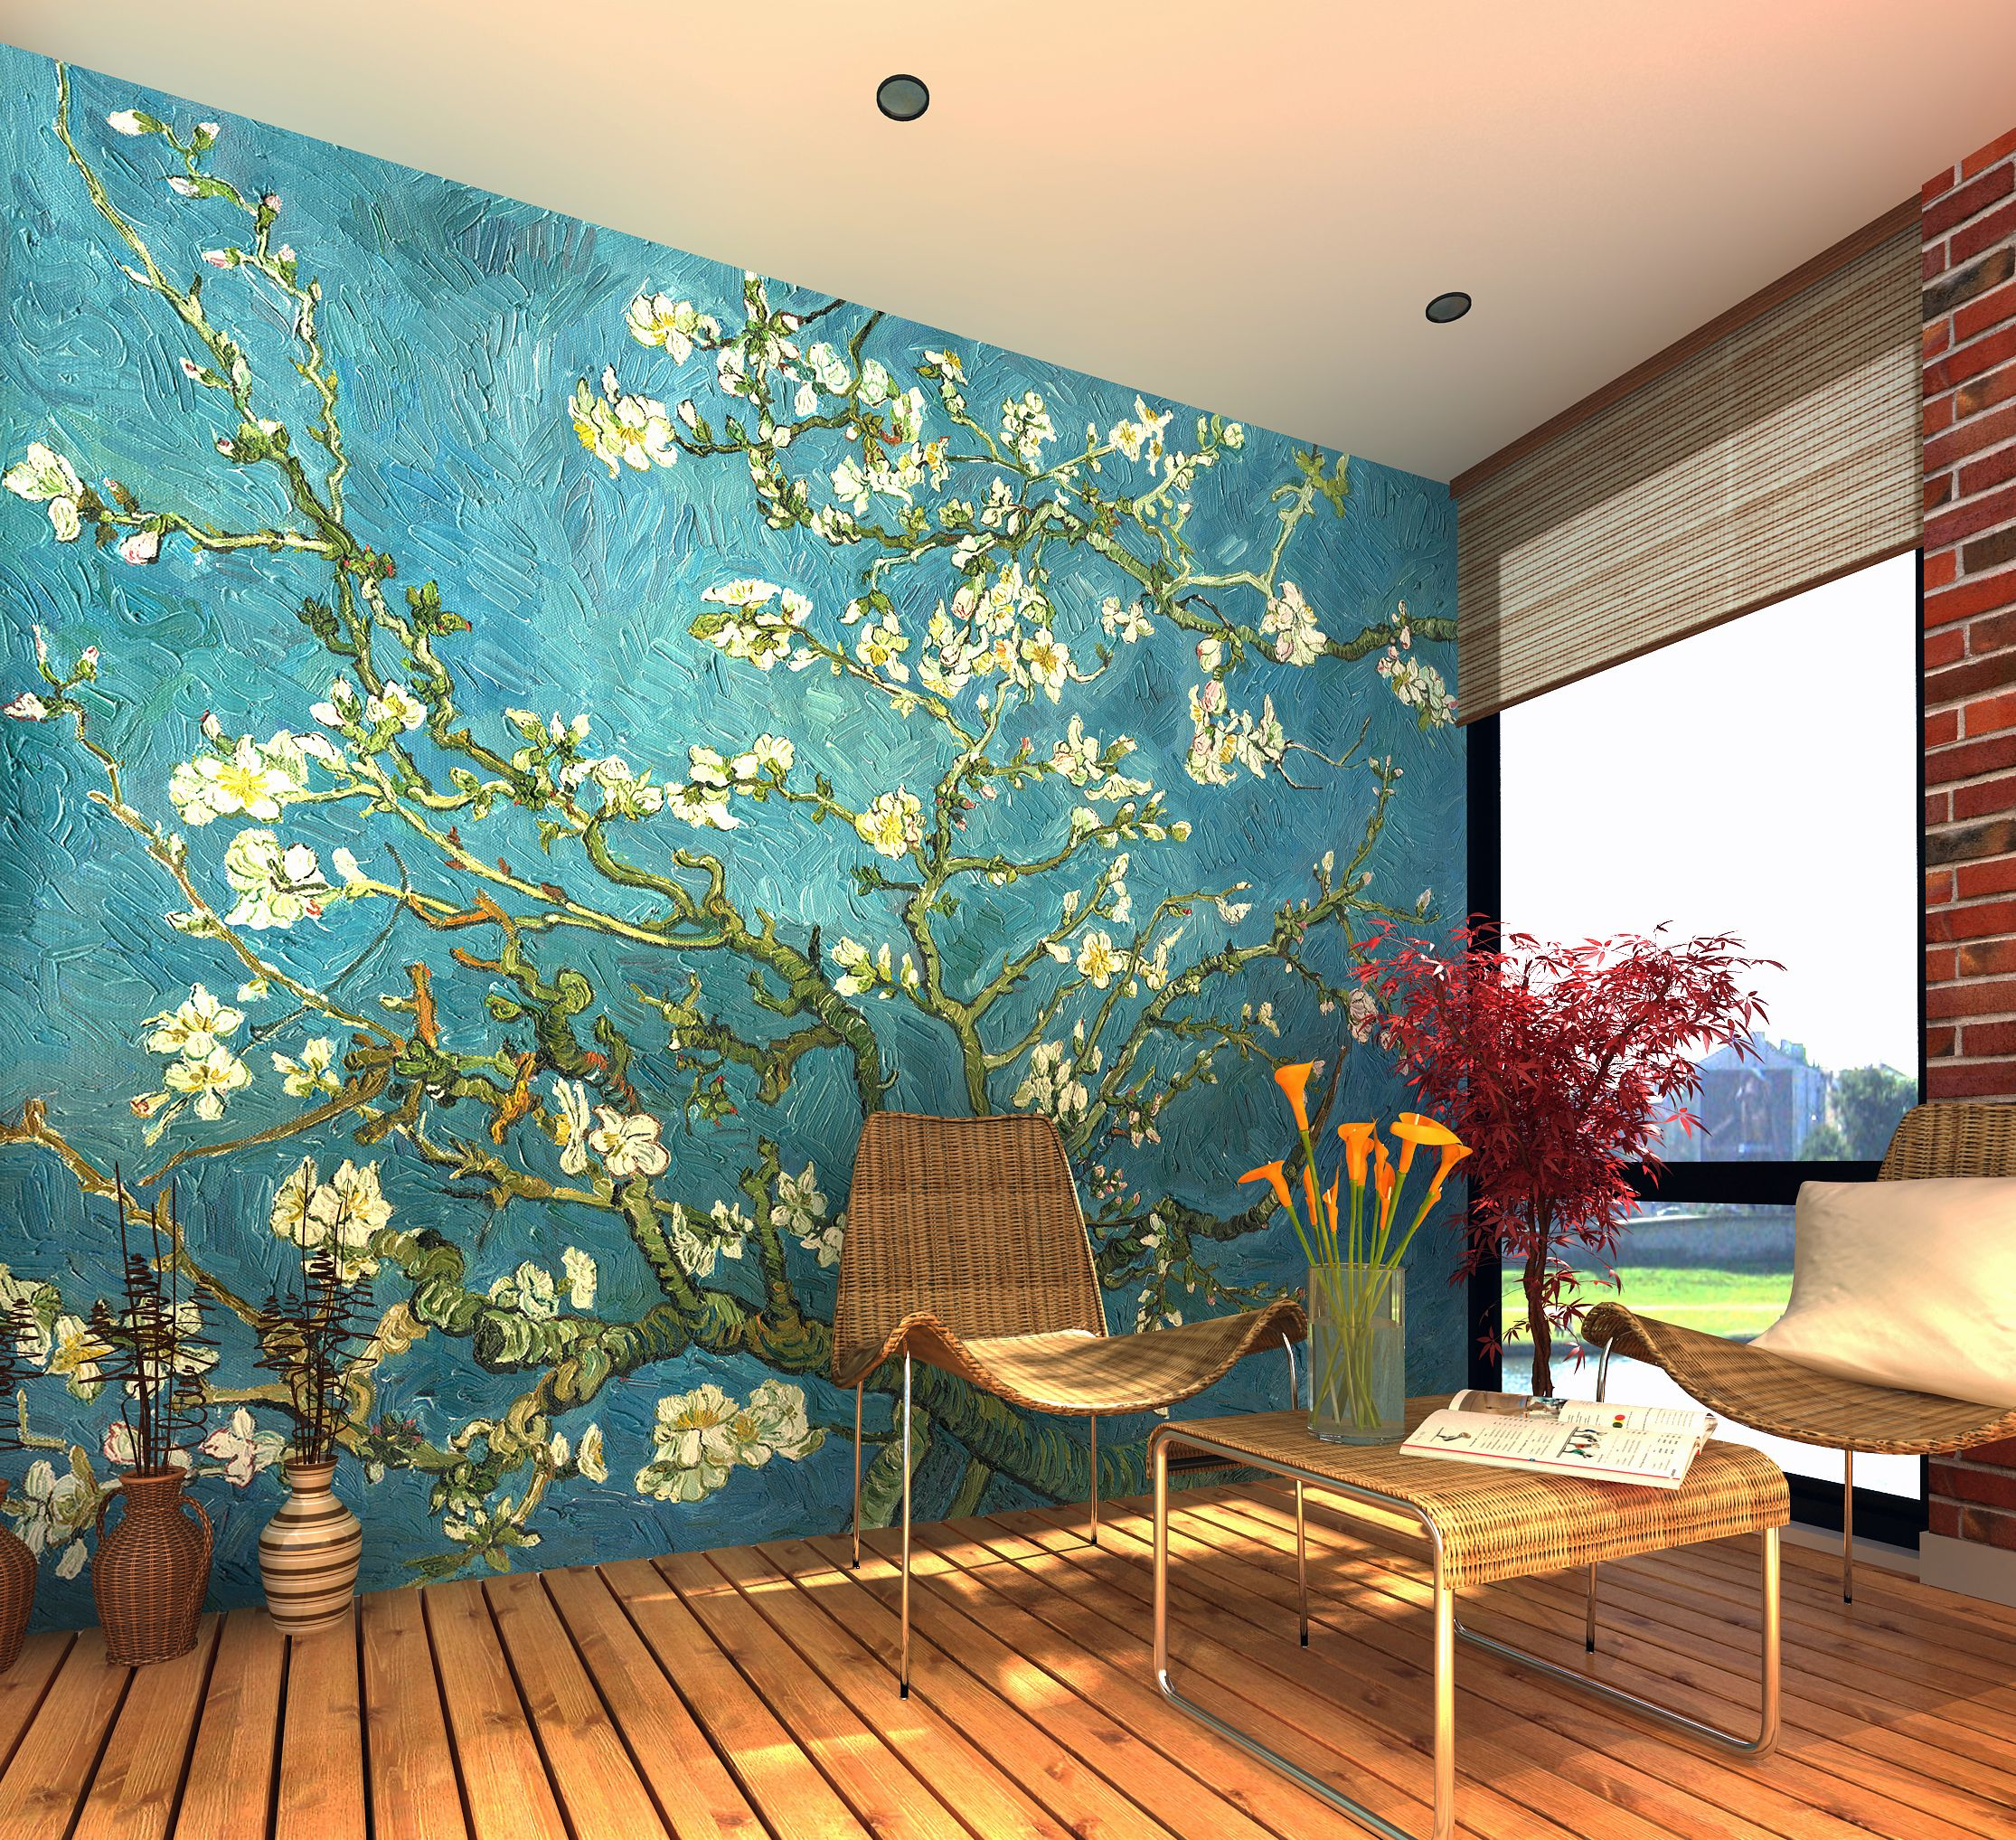 Van gogh almond blossom wall mural wallpaper for Wallpaper of home wall